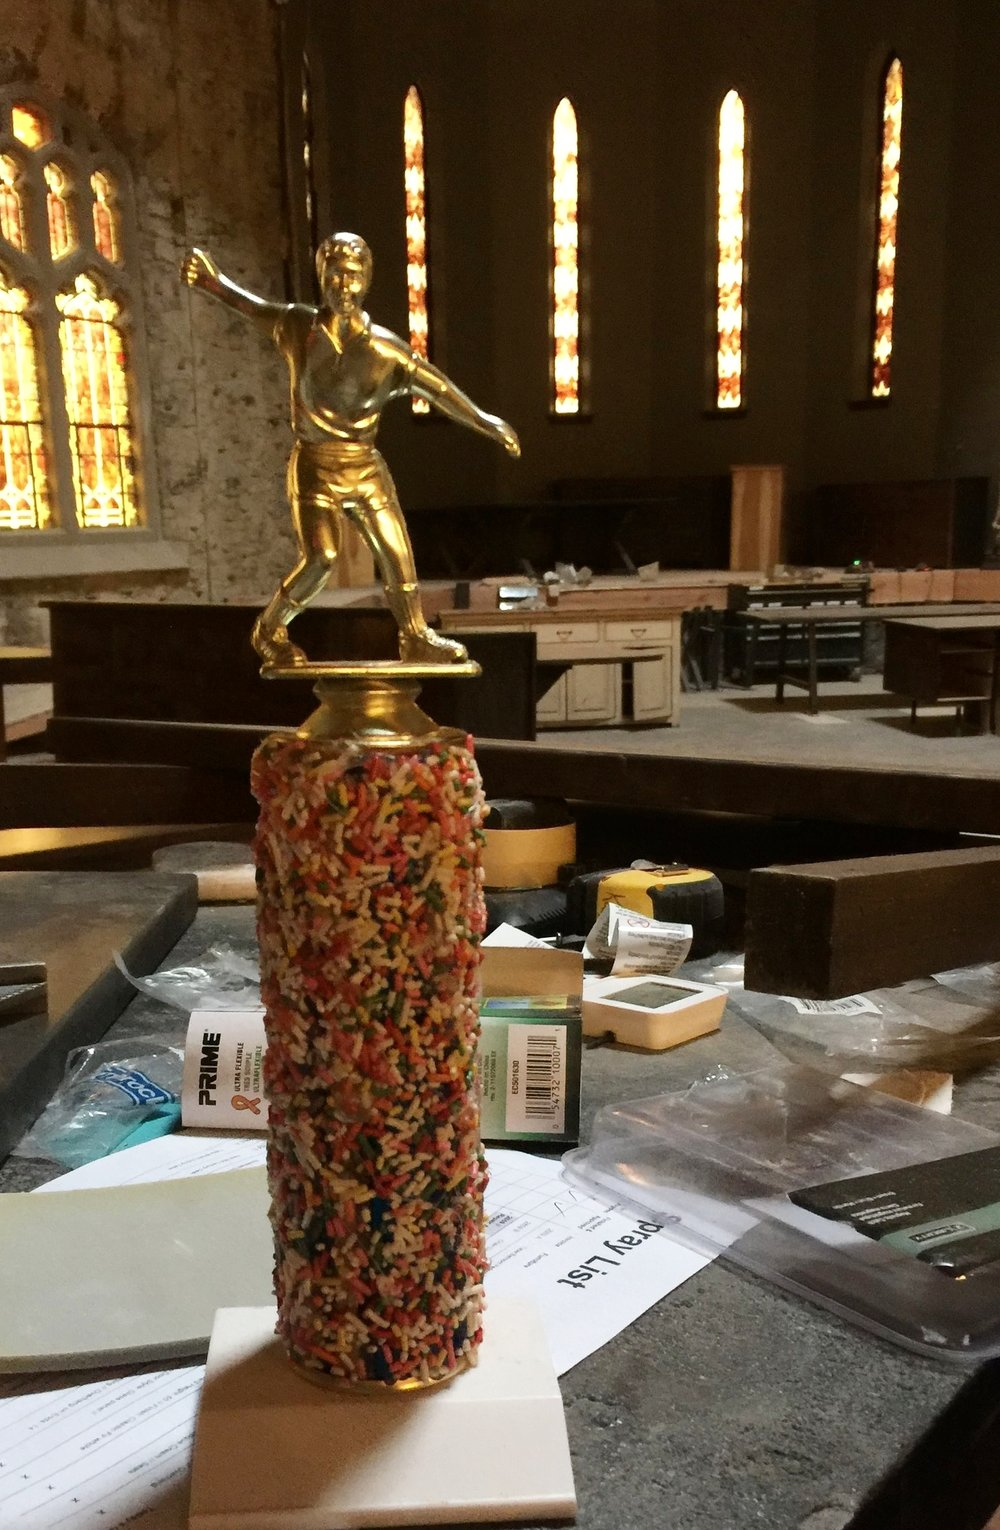 The highly coveted Sprinkles trophy!